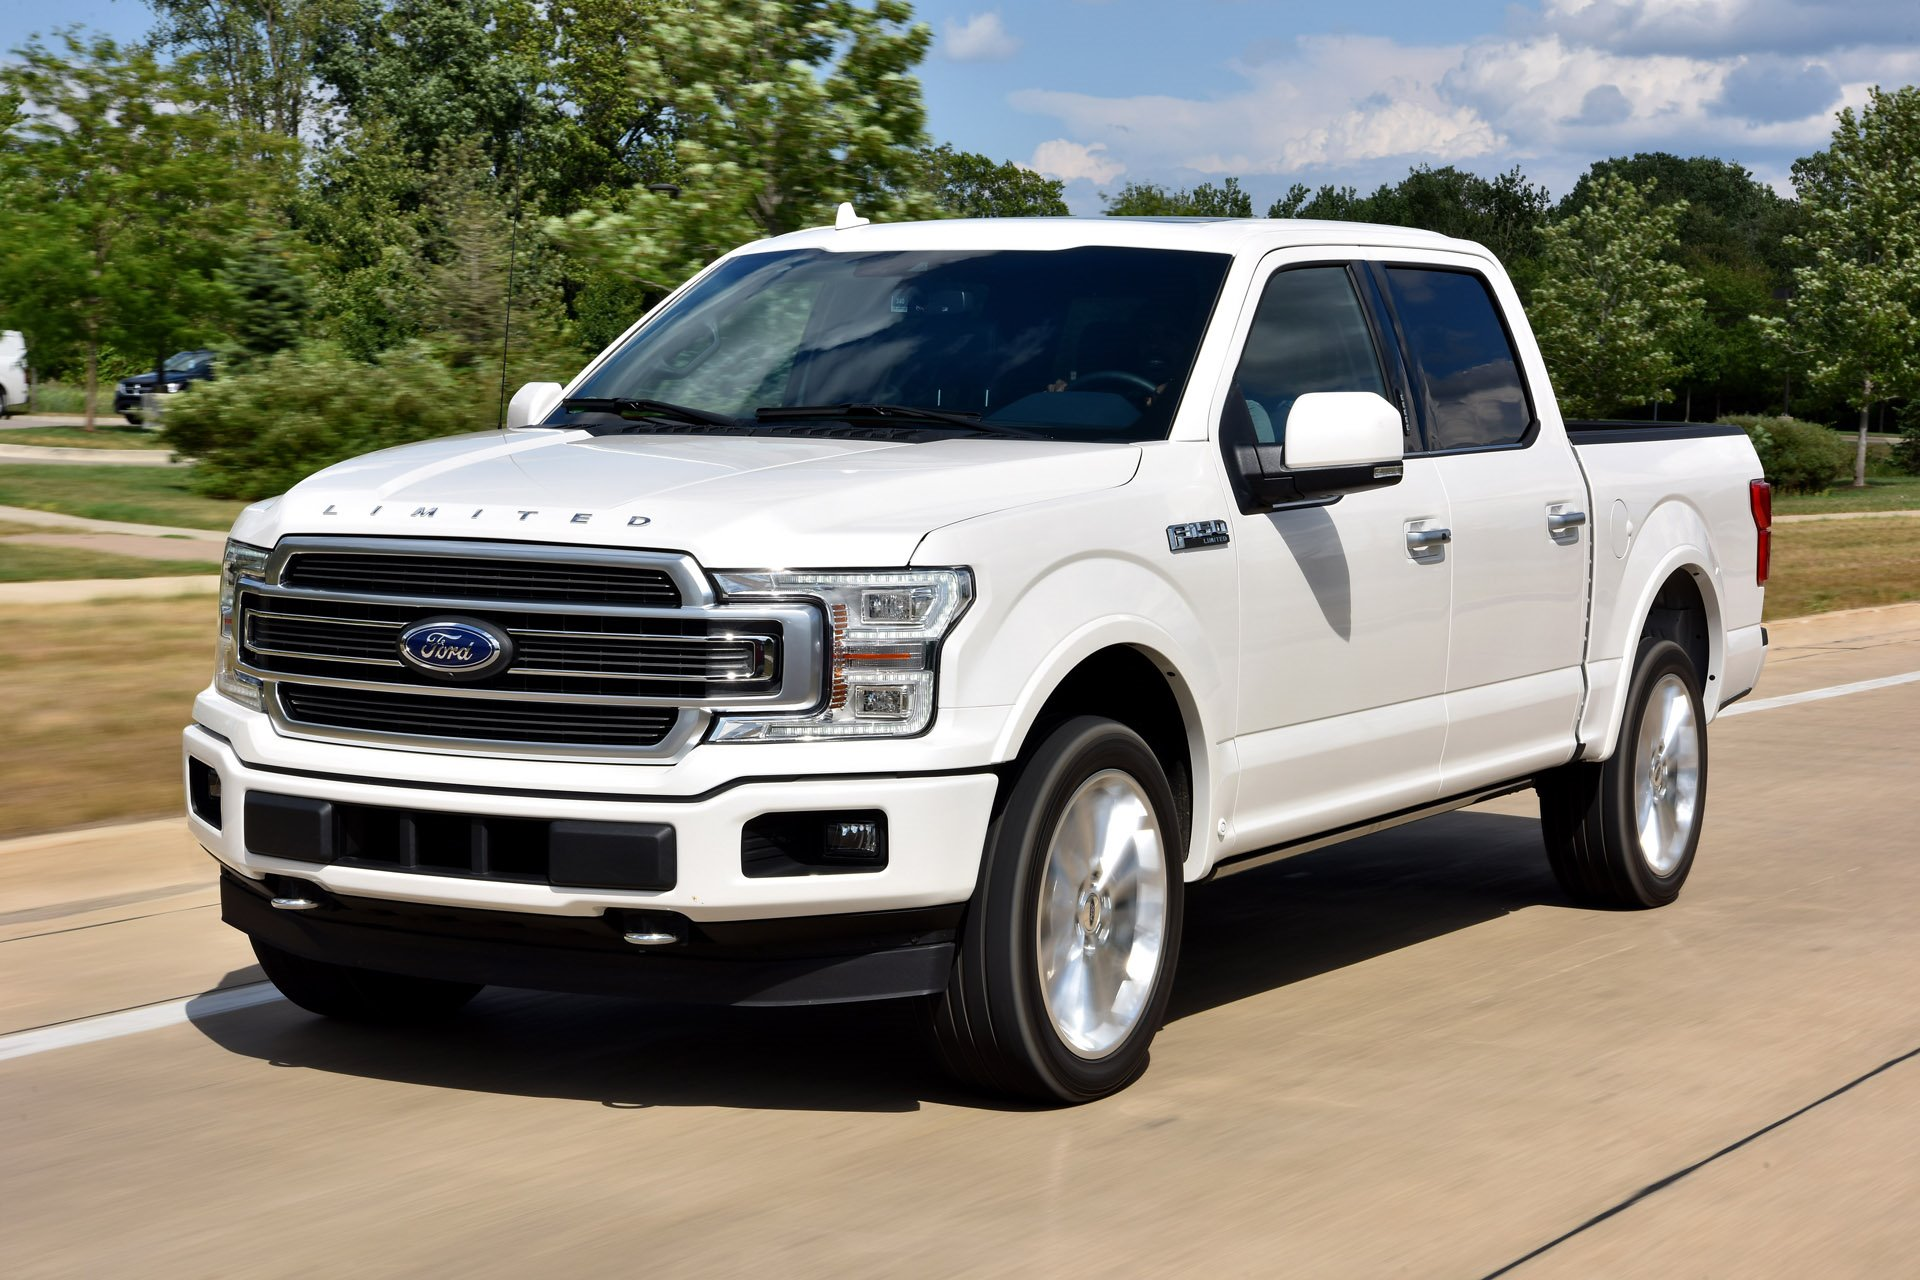 New 2019 Ford-F-150 Raptor F-150 Raptor for sale $55,840 at M and V Leasing in Brooklyn NY 11223 1